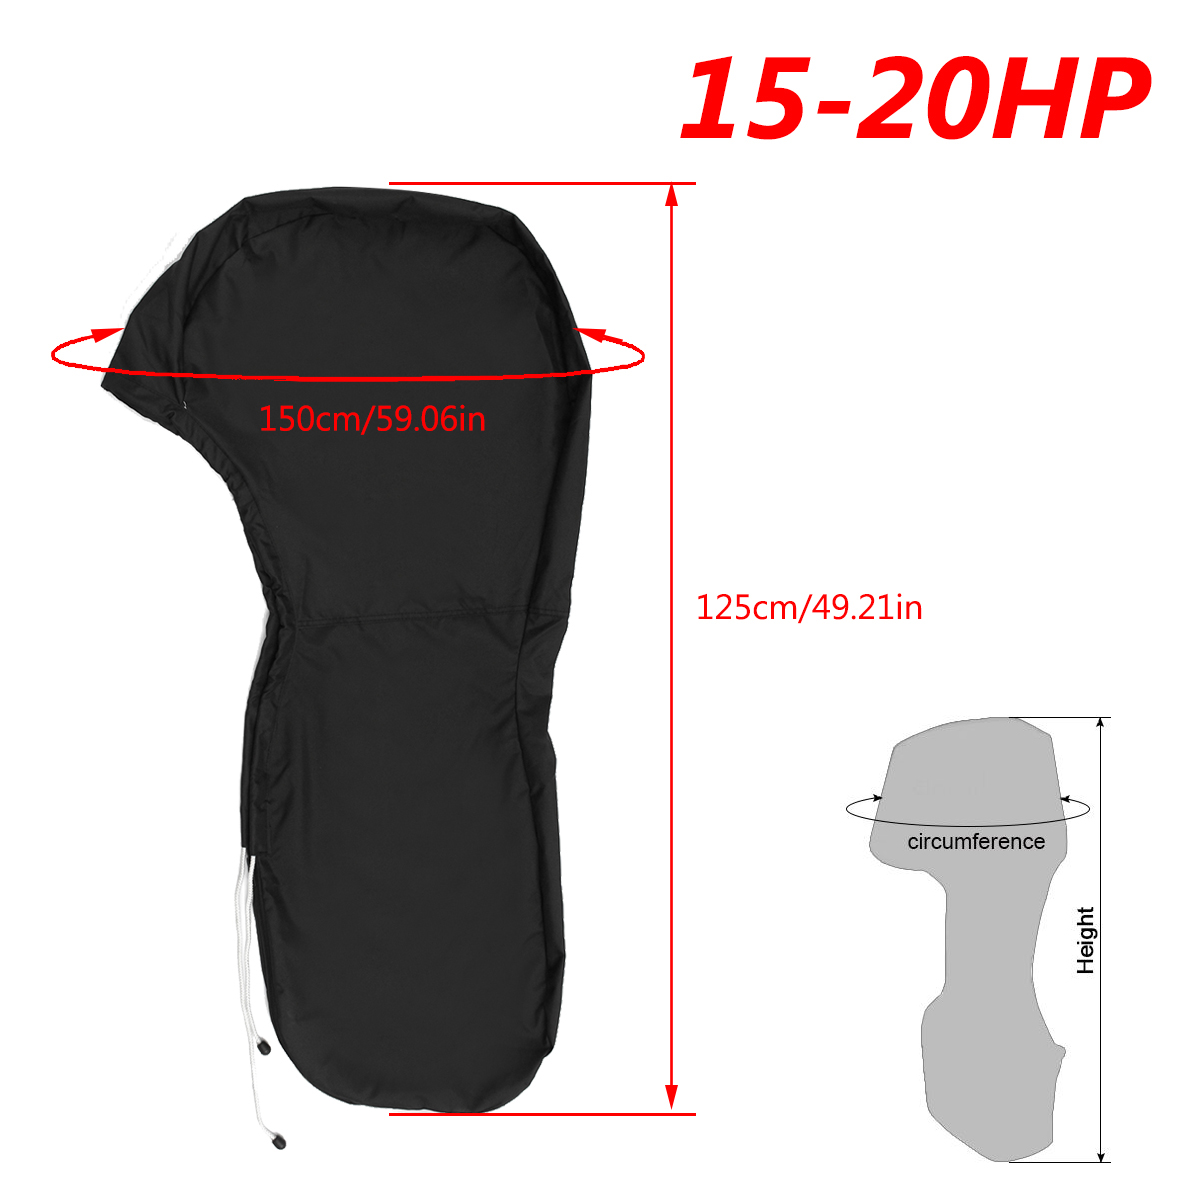 600D 6-225HP Boat Full Motor Cover Outboard Engine Protector